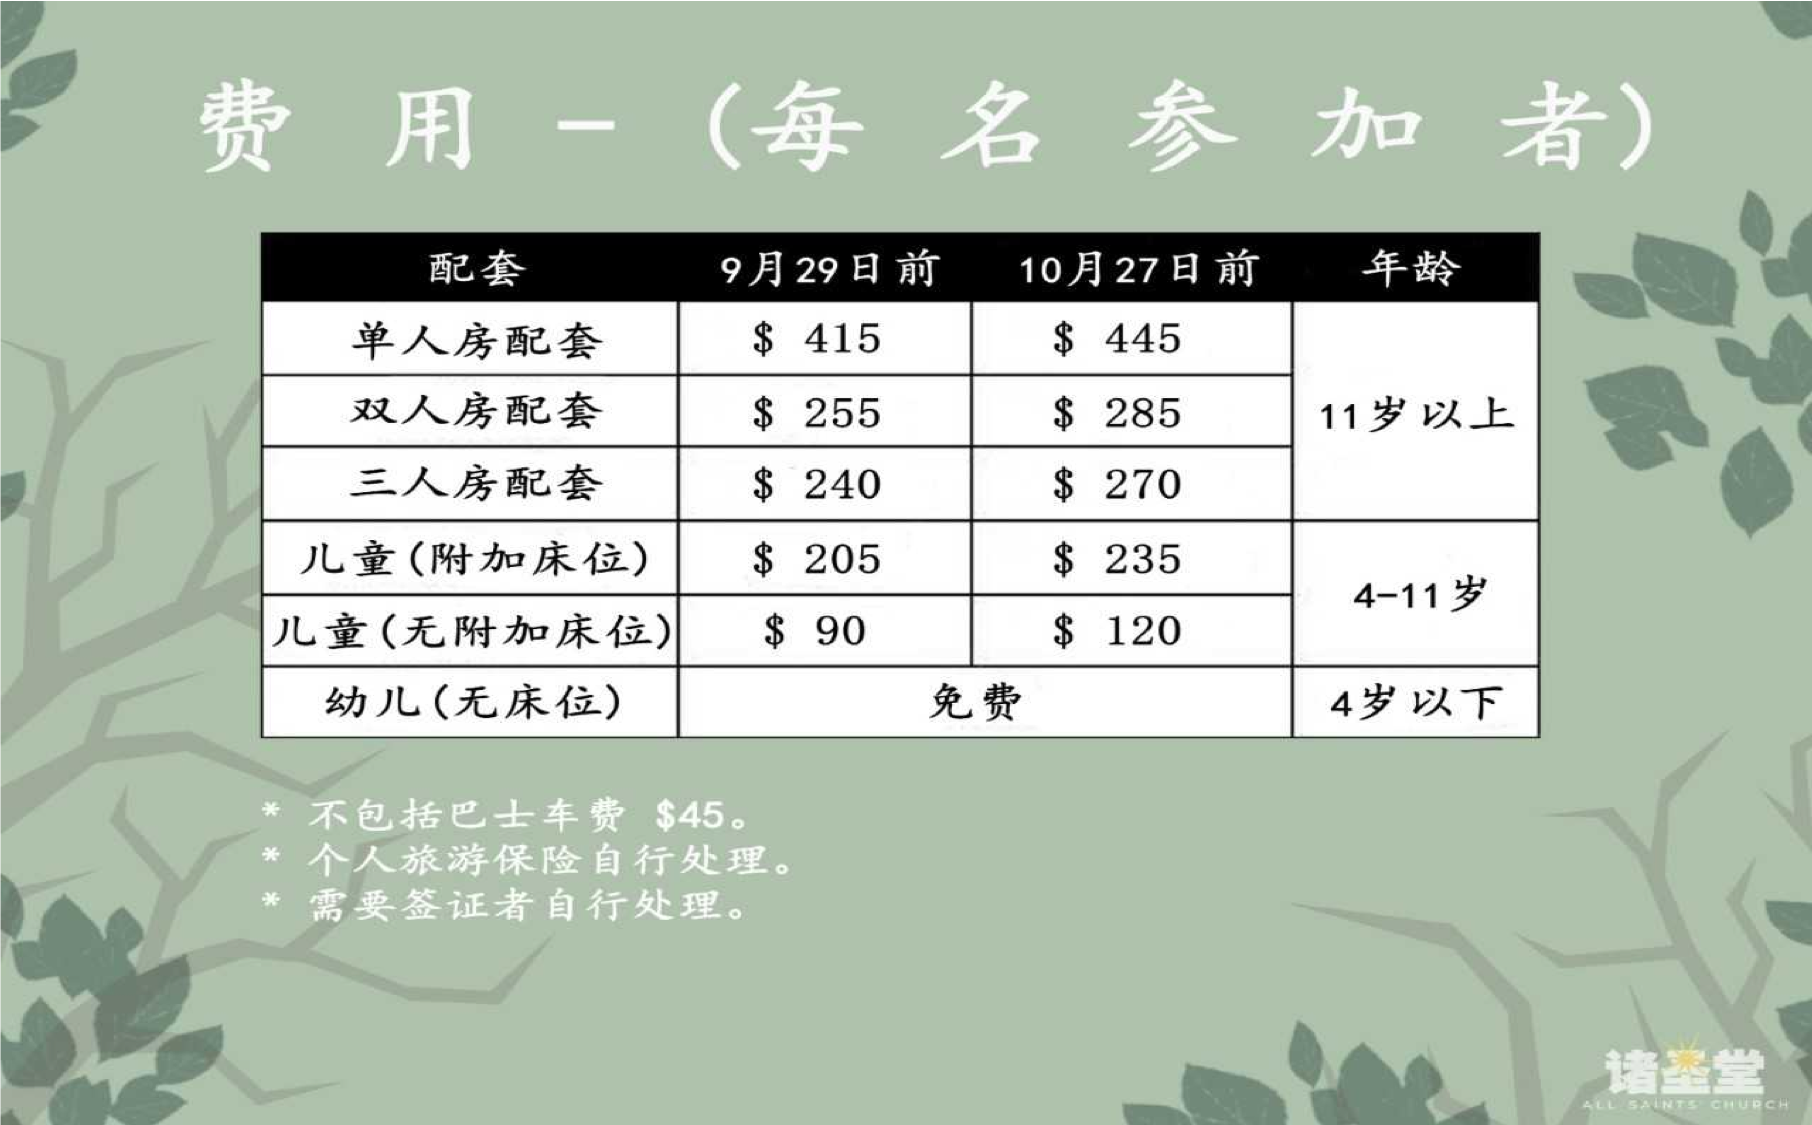 Church Camp Fees 2019.png